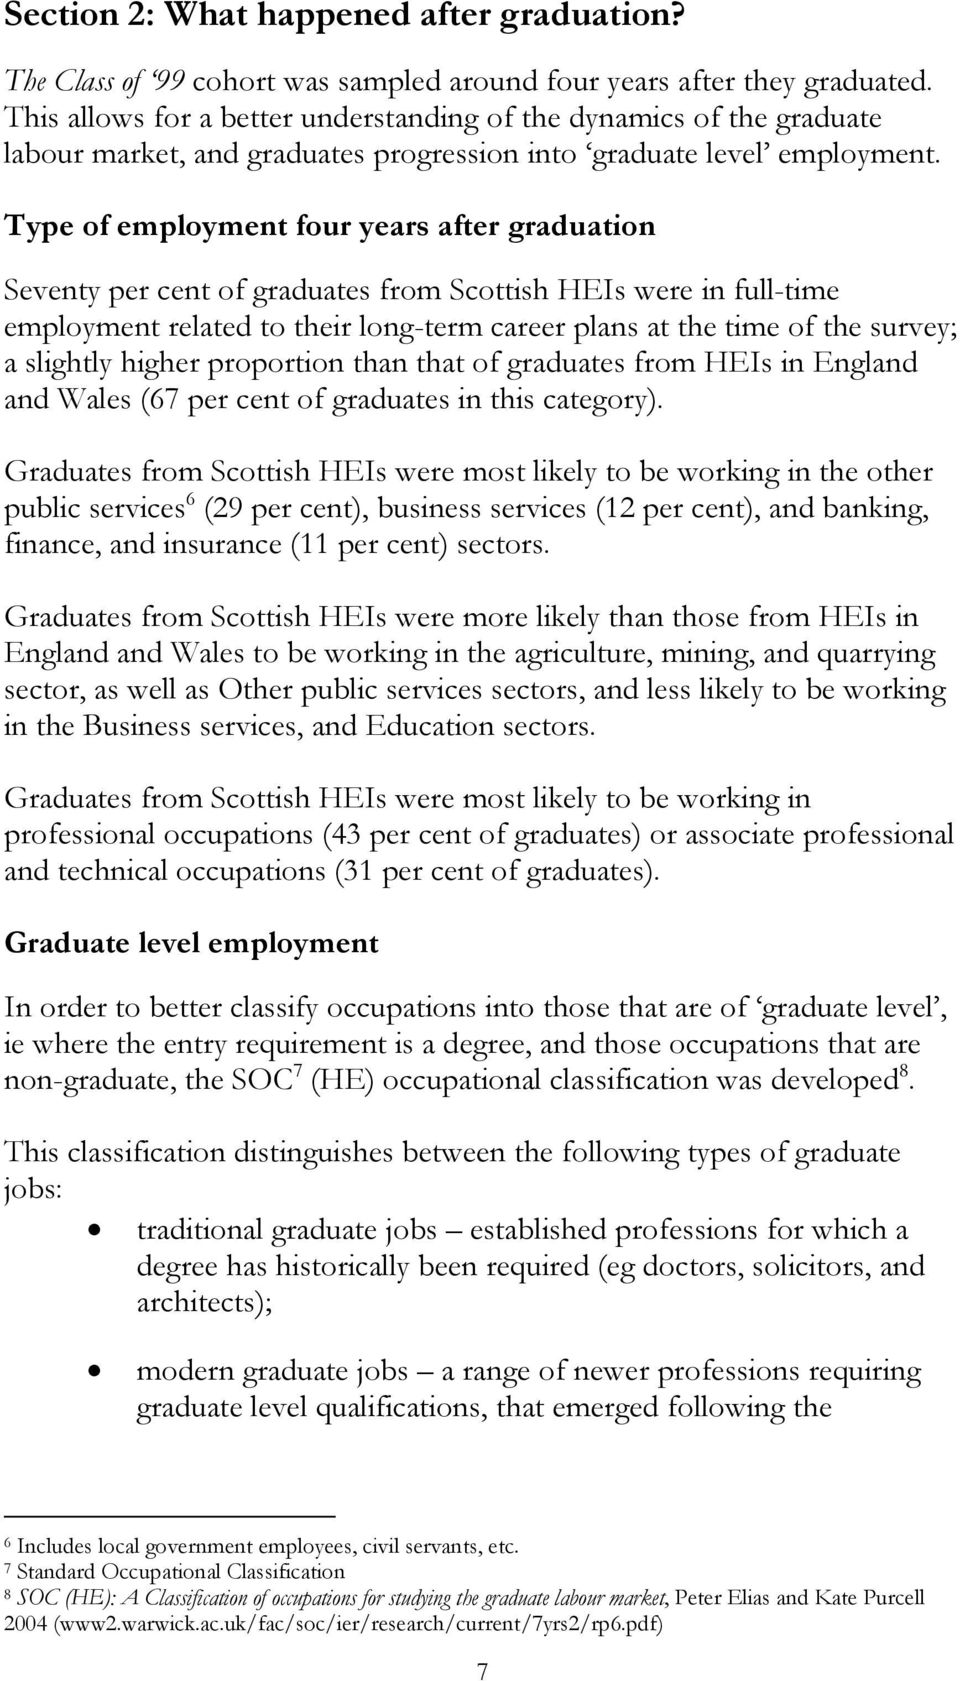 Type of employment four years after graduation Seventy per cent of graduates from Scottish HEIs were in full-time employment related to their long-term career plans at the time of the survey; a